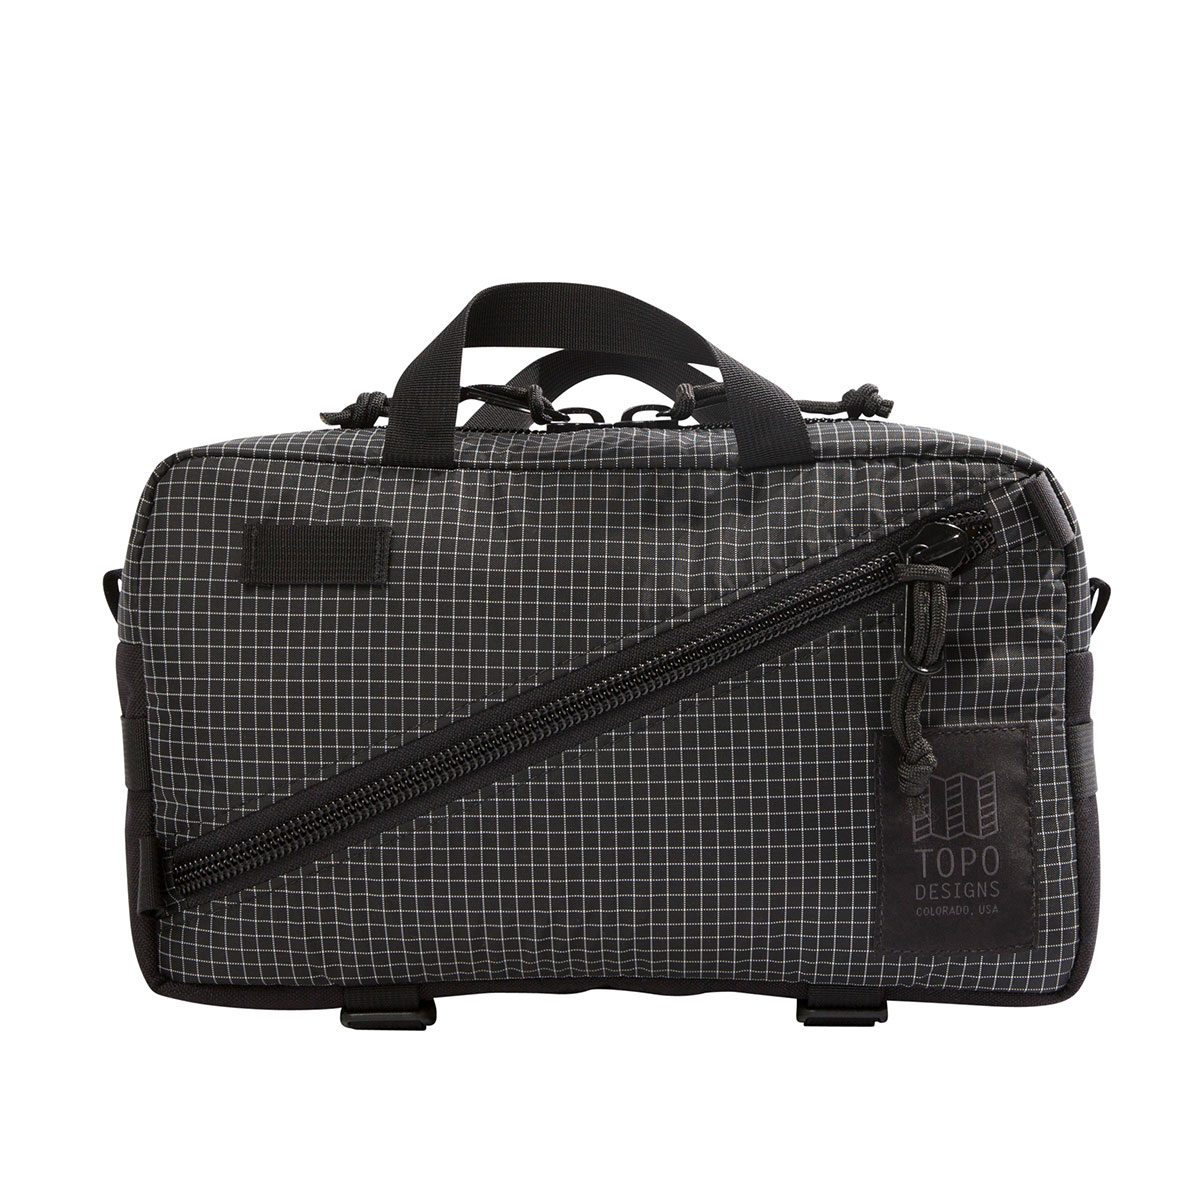 Topo Designs Quick Pack Black/White Ripstop, a well-built, secure bag for travel